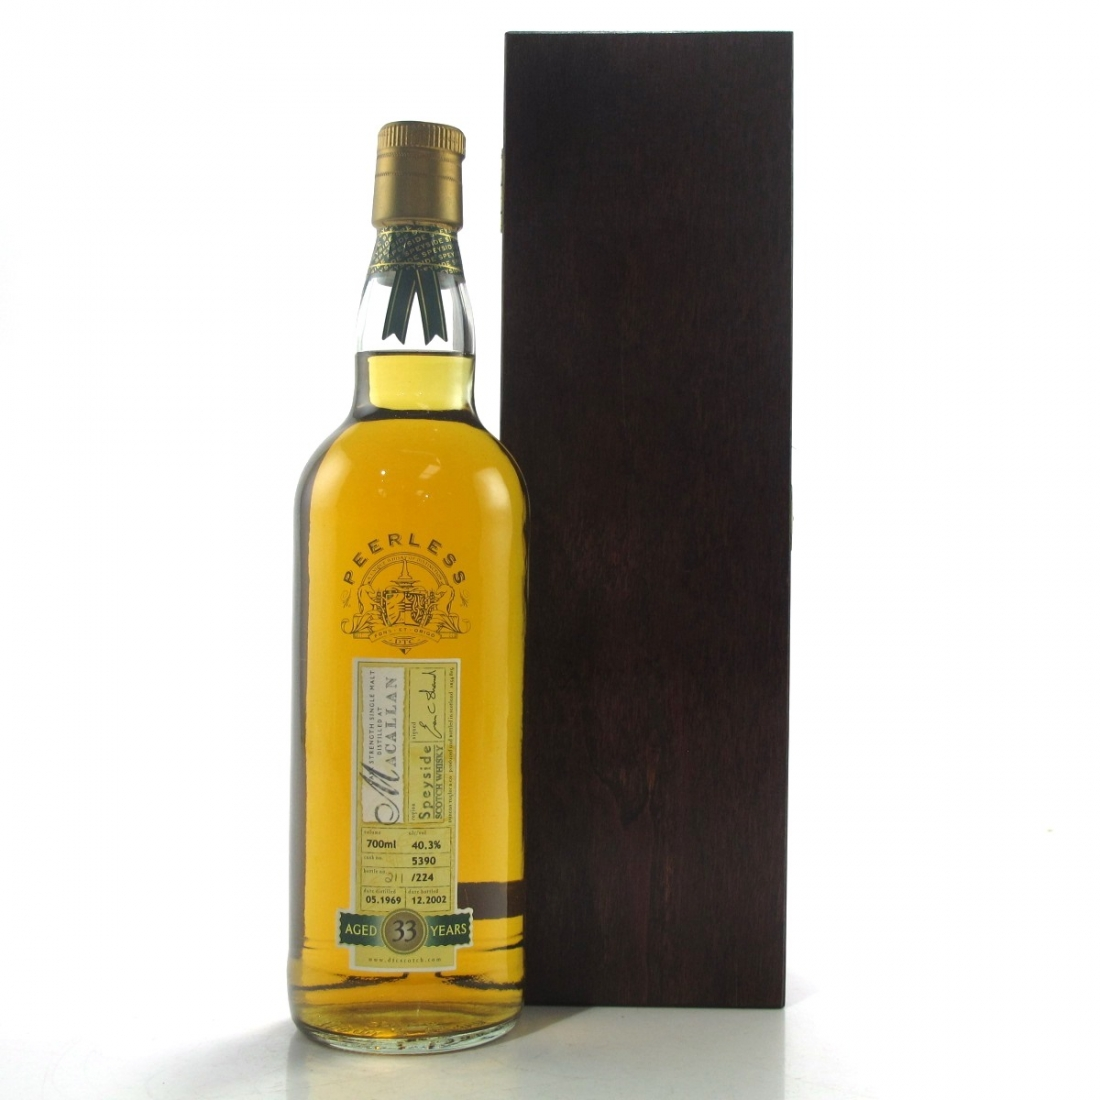 Macallan 1969 Duncan Taylor 33 Year Old